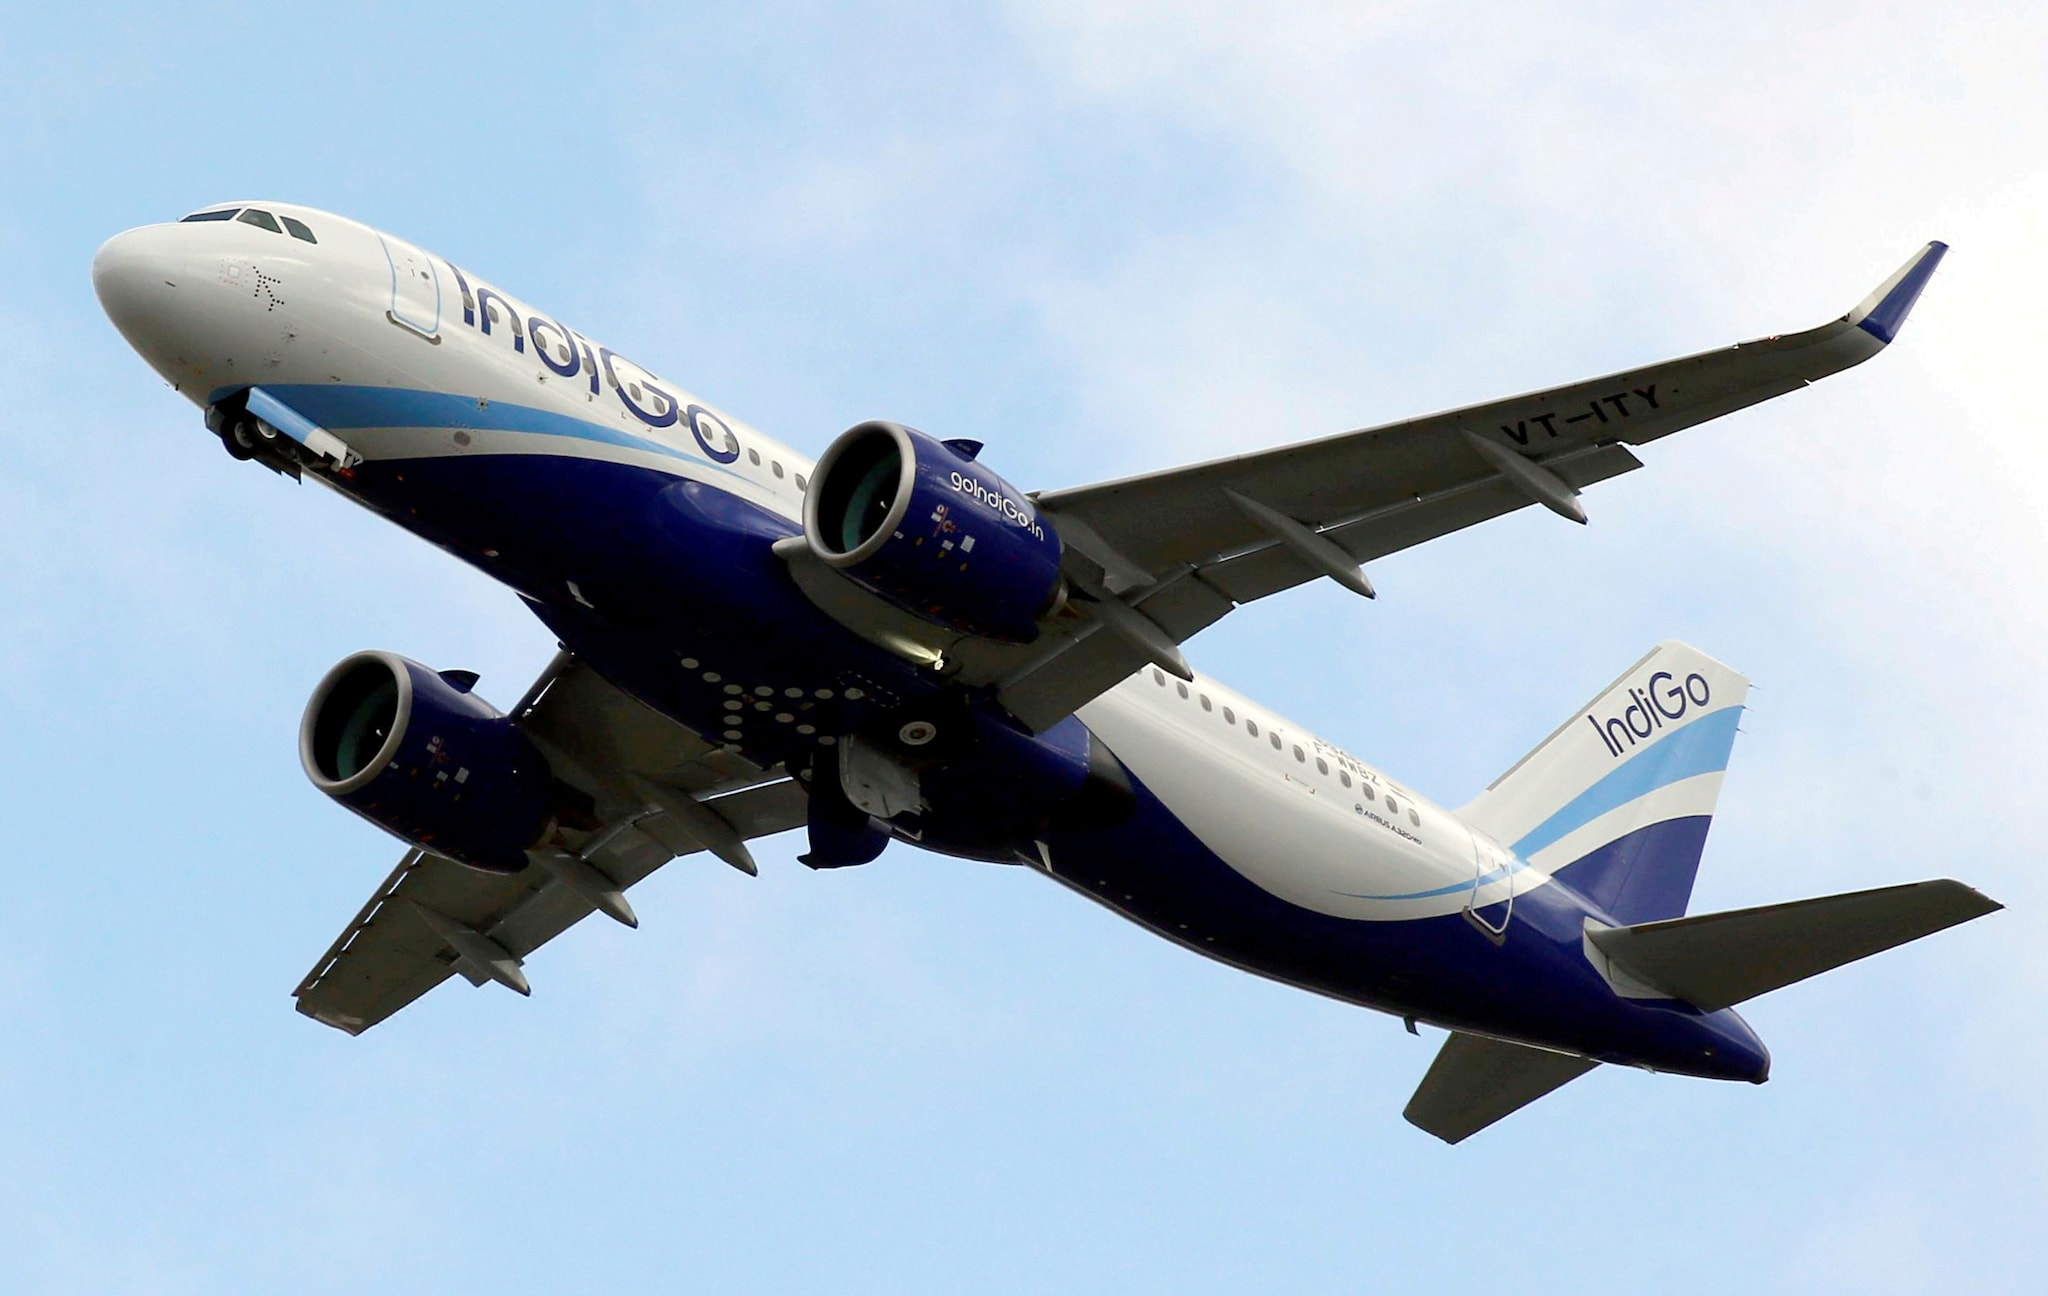 Interglobe Aviation's shares gained 4.44 percent to touch a 52-week high of Rs 1,737.95 on the NSE. (Image: Reuters)